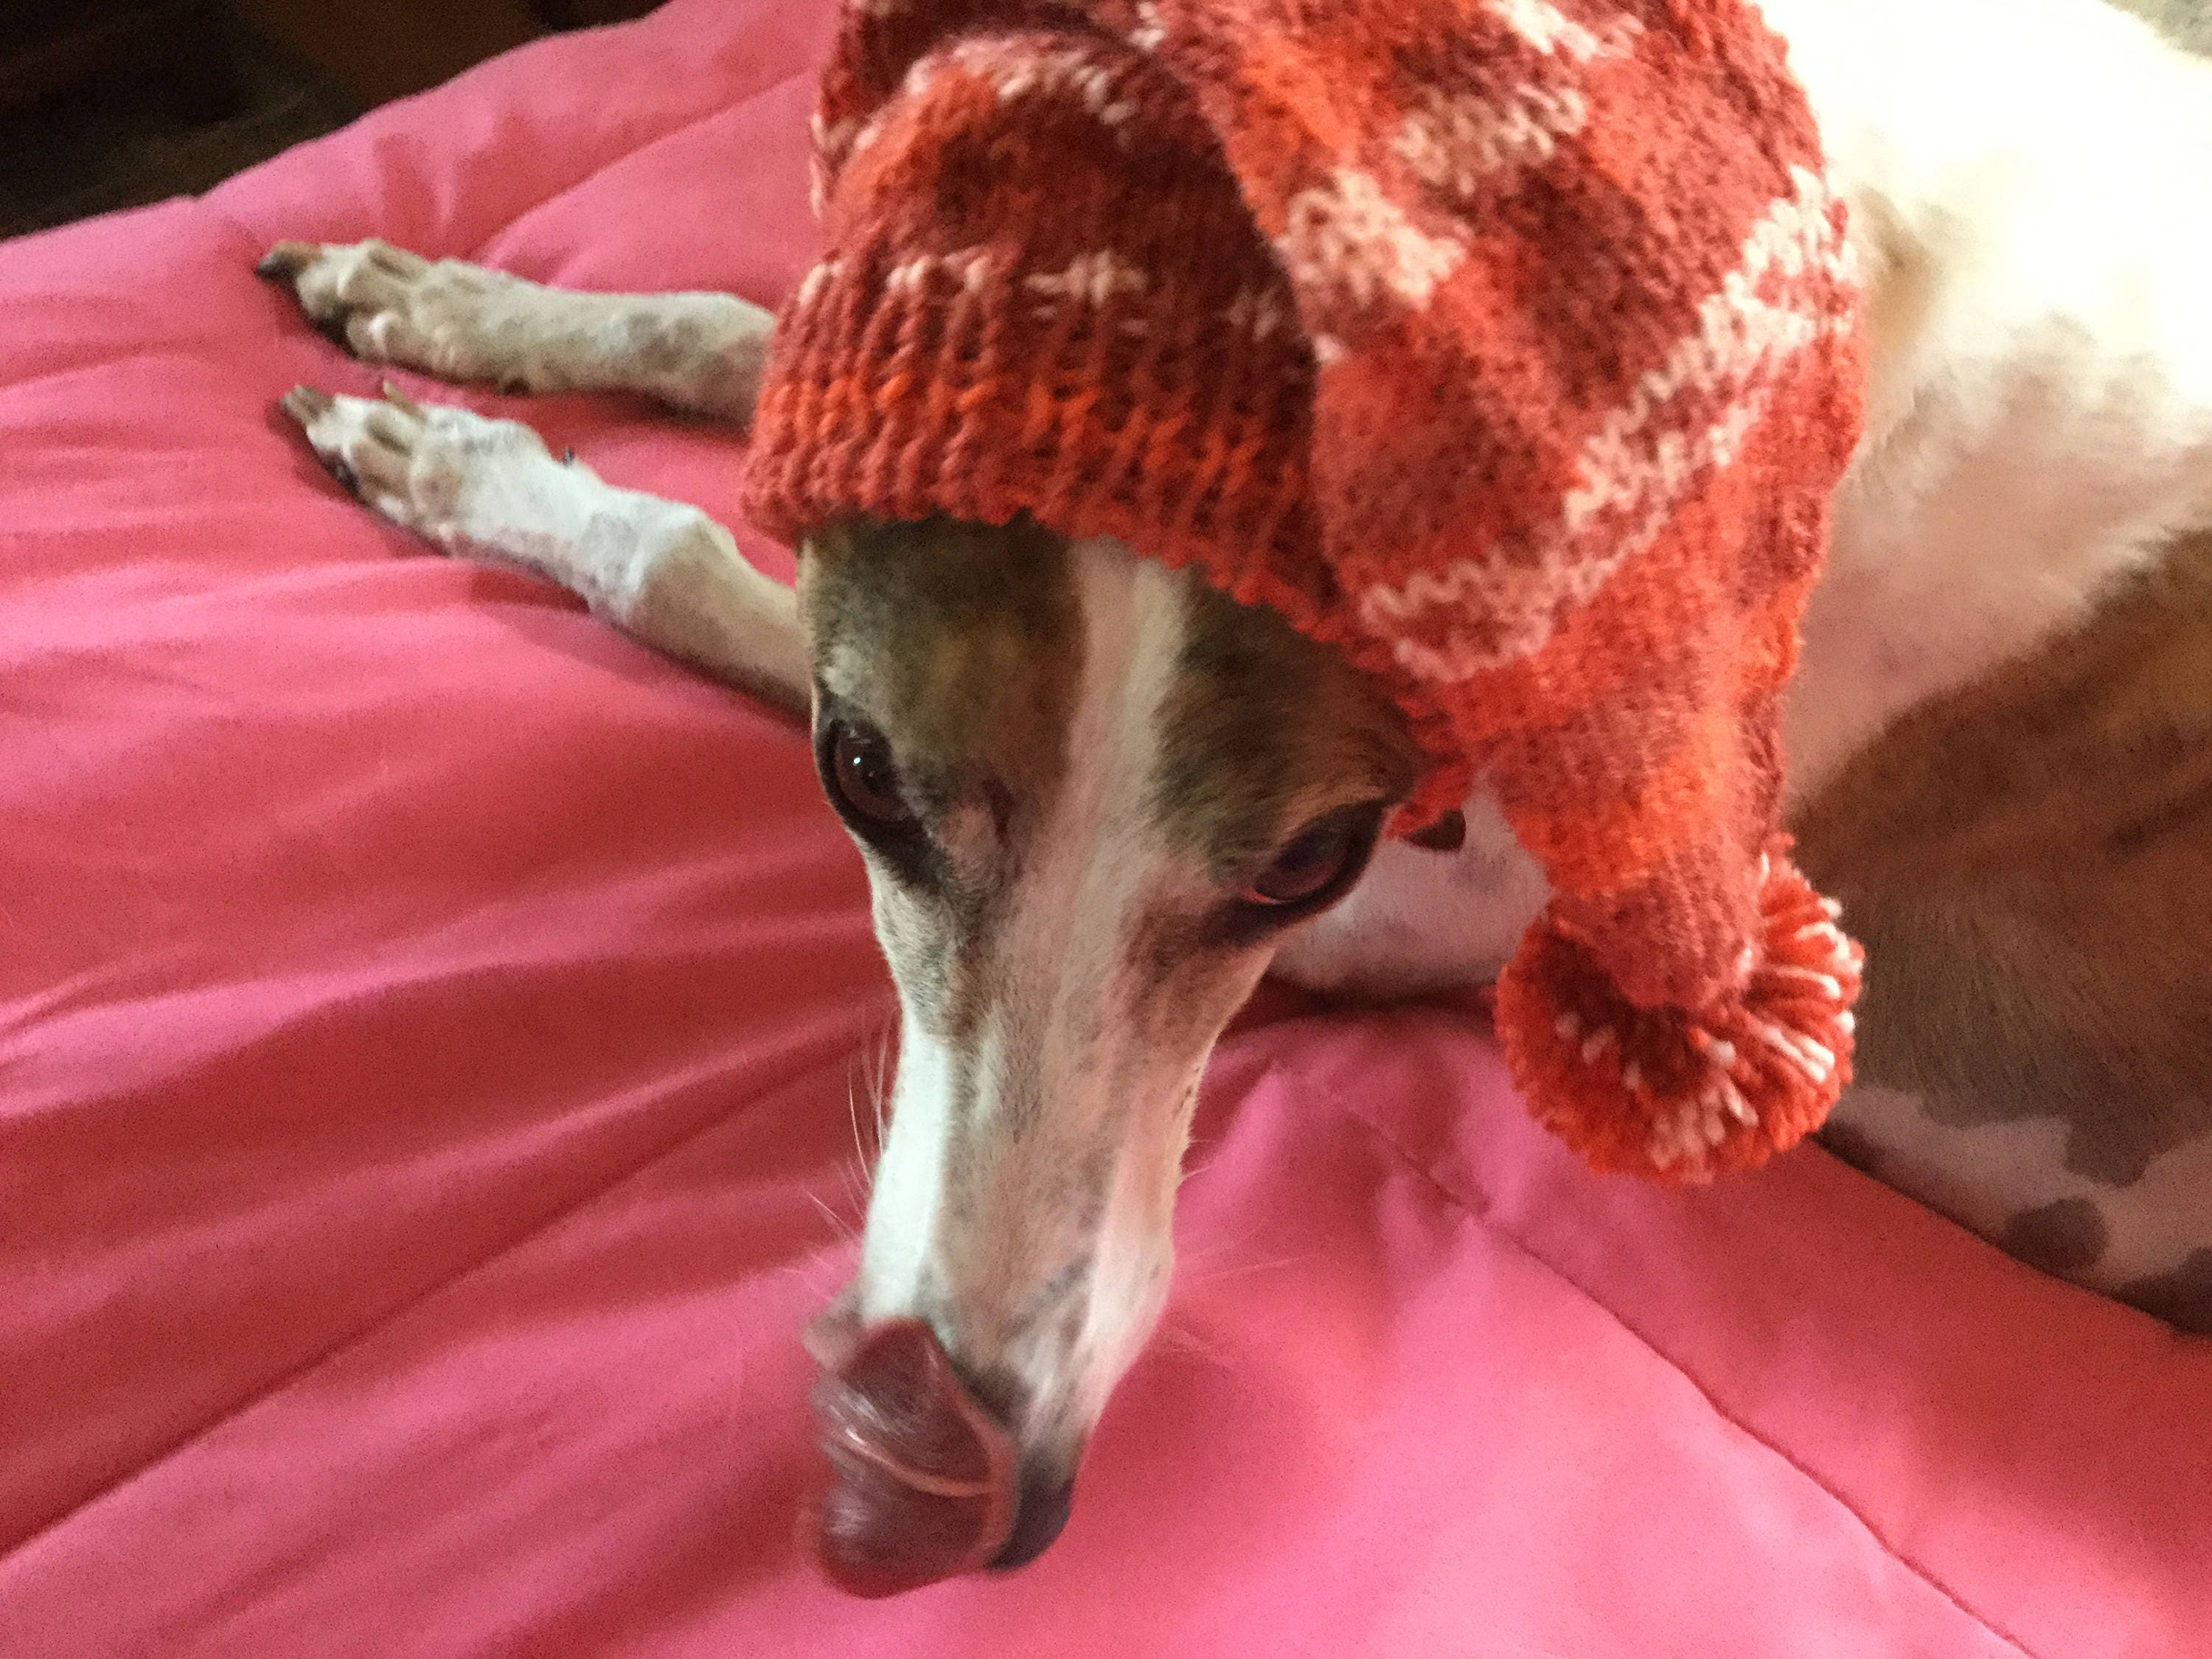 Pointed hat with snood for greyhound or other large sighthound gallery photo gallery photo gallery photo gallery photo gallery photo bankloansurffo Images